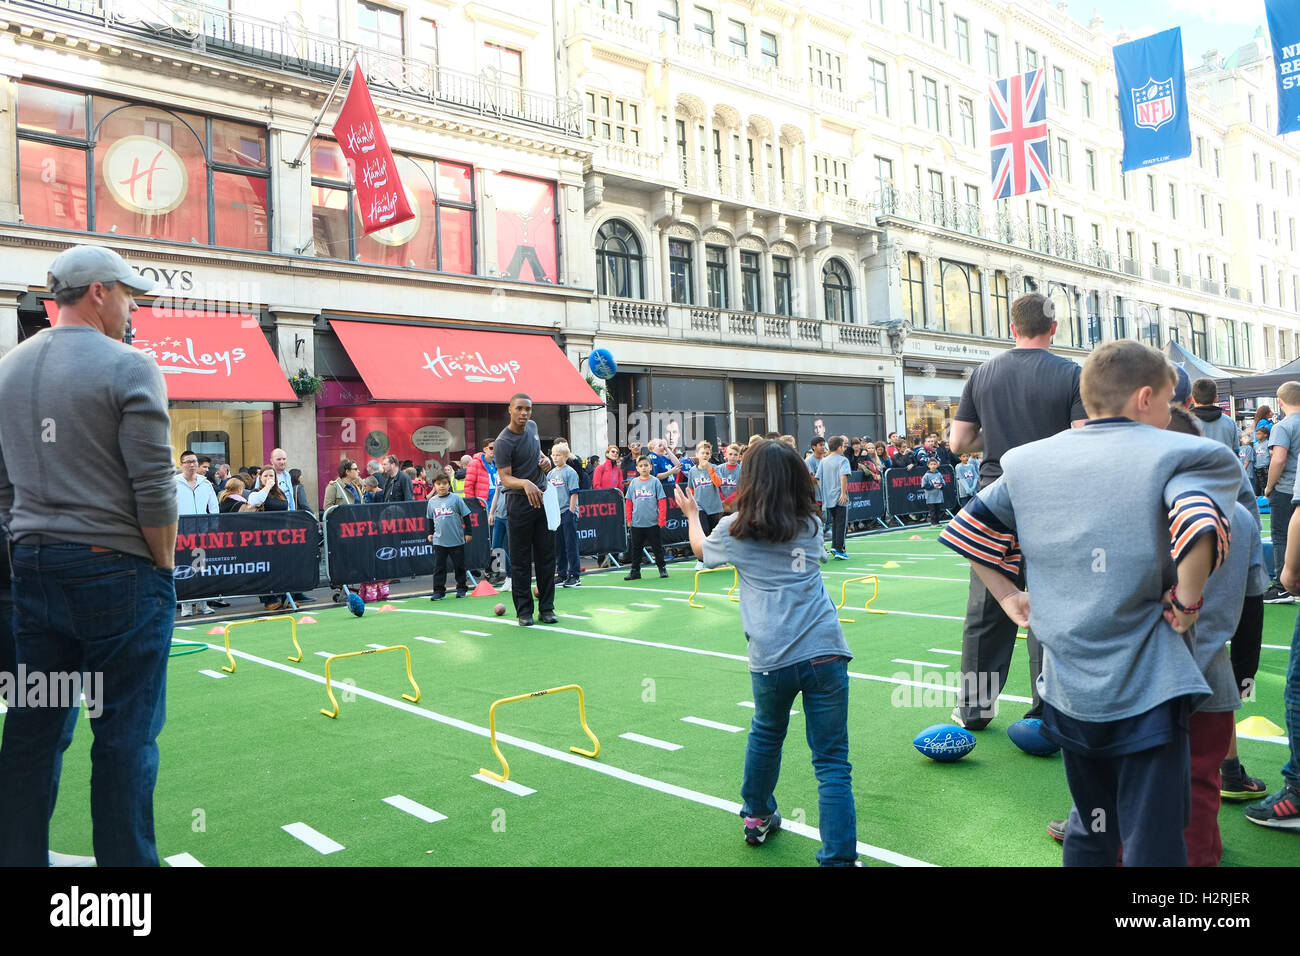 London, UK. 1st October 2016. Regents Street is pedestrianized for its 4th year NFL fan festival, more than 60,000 - Stock Image